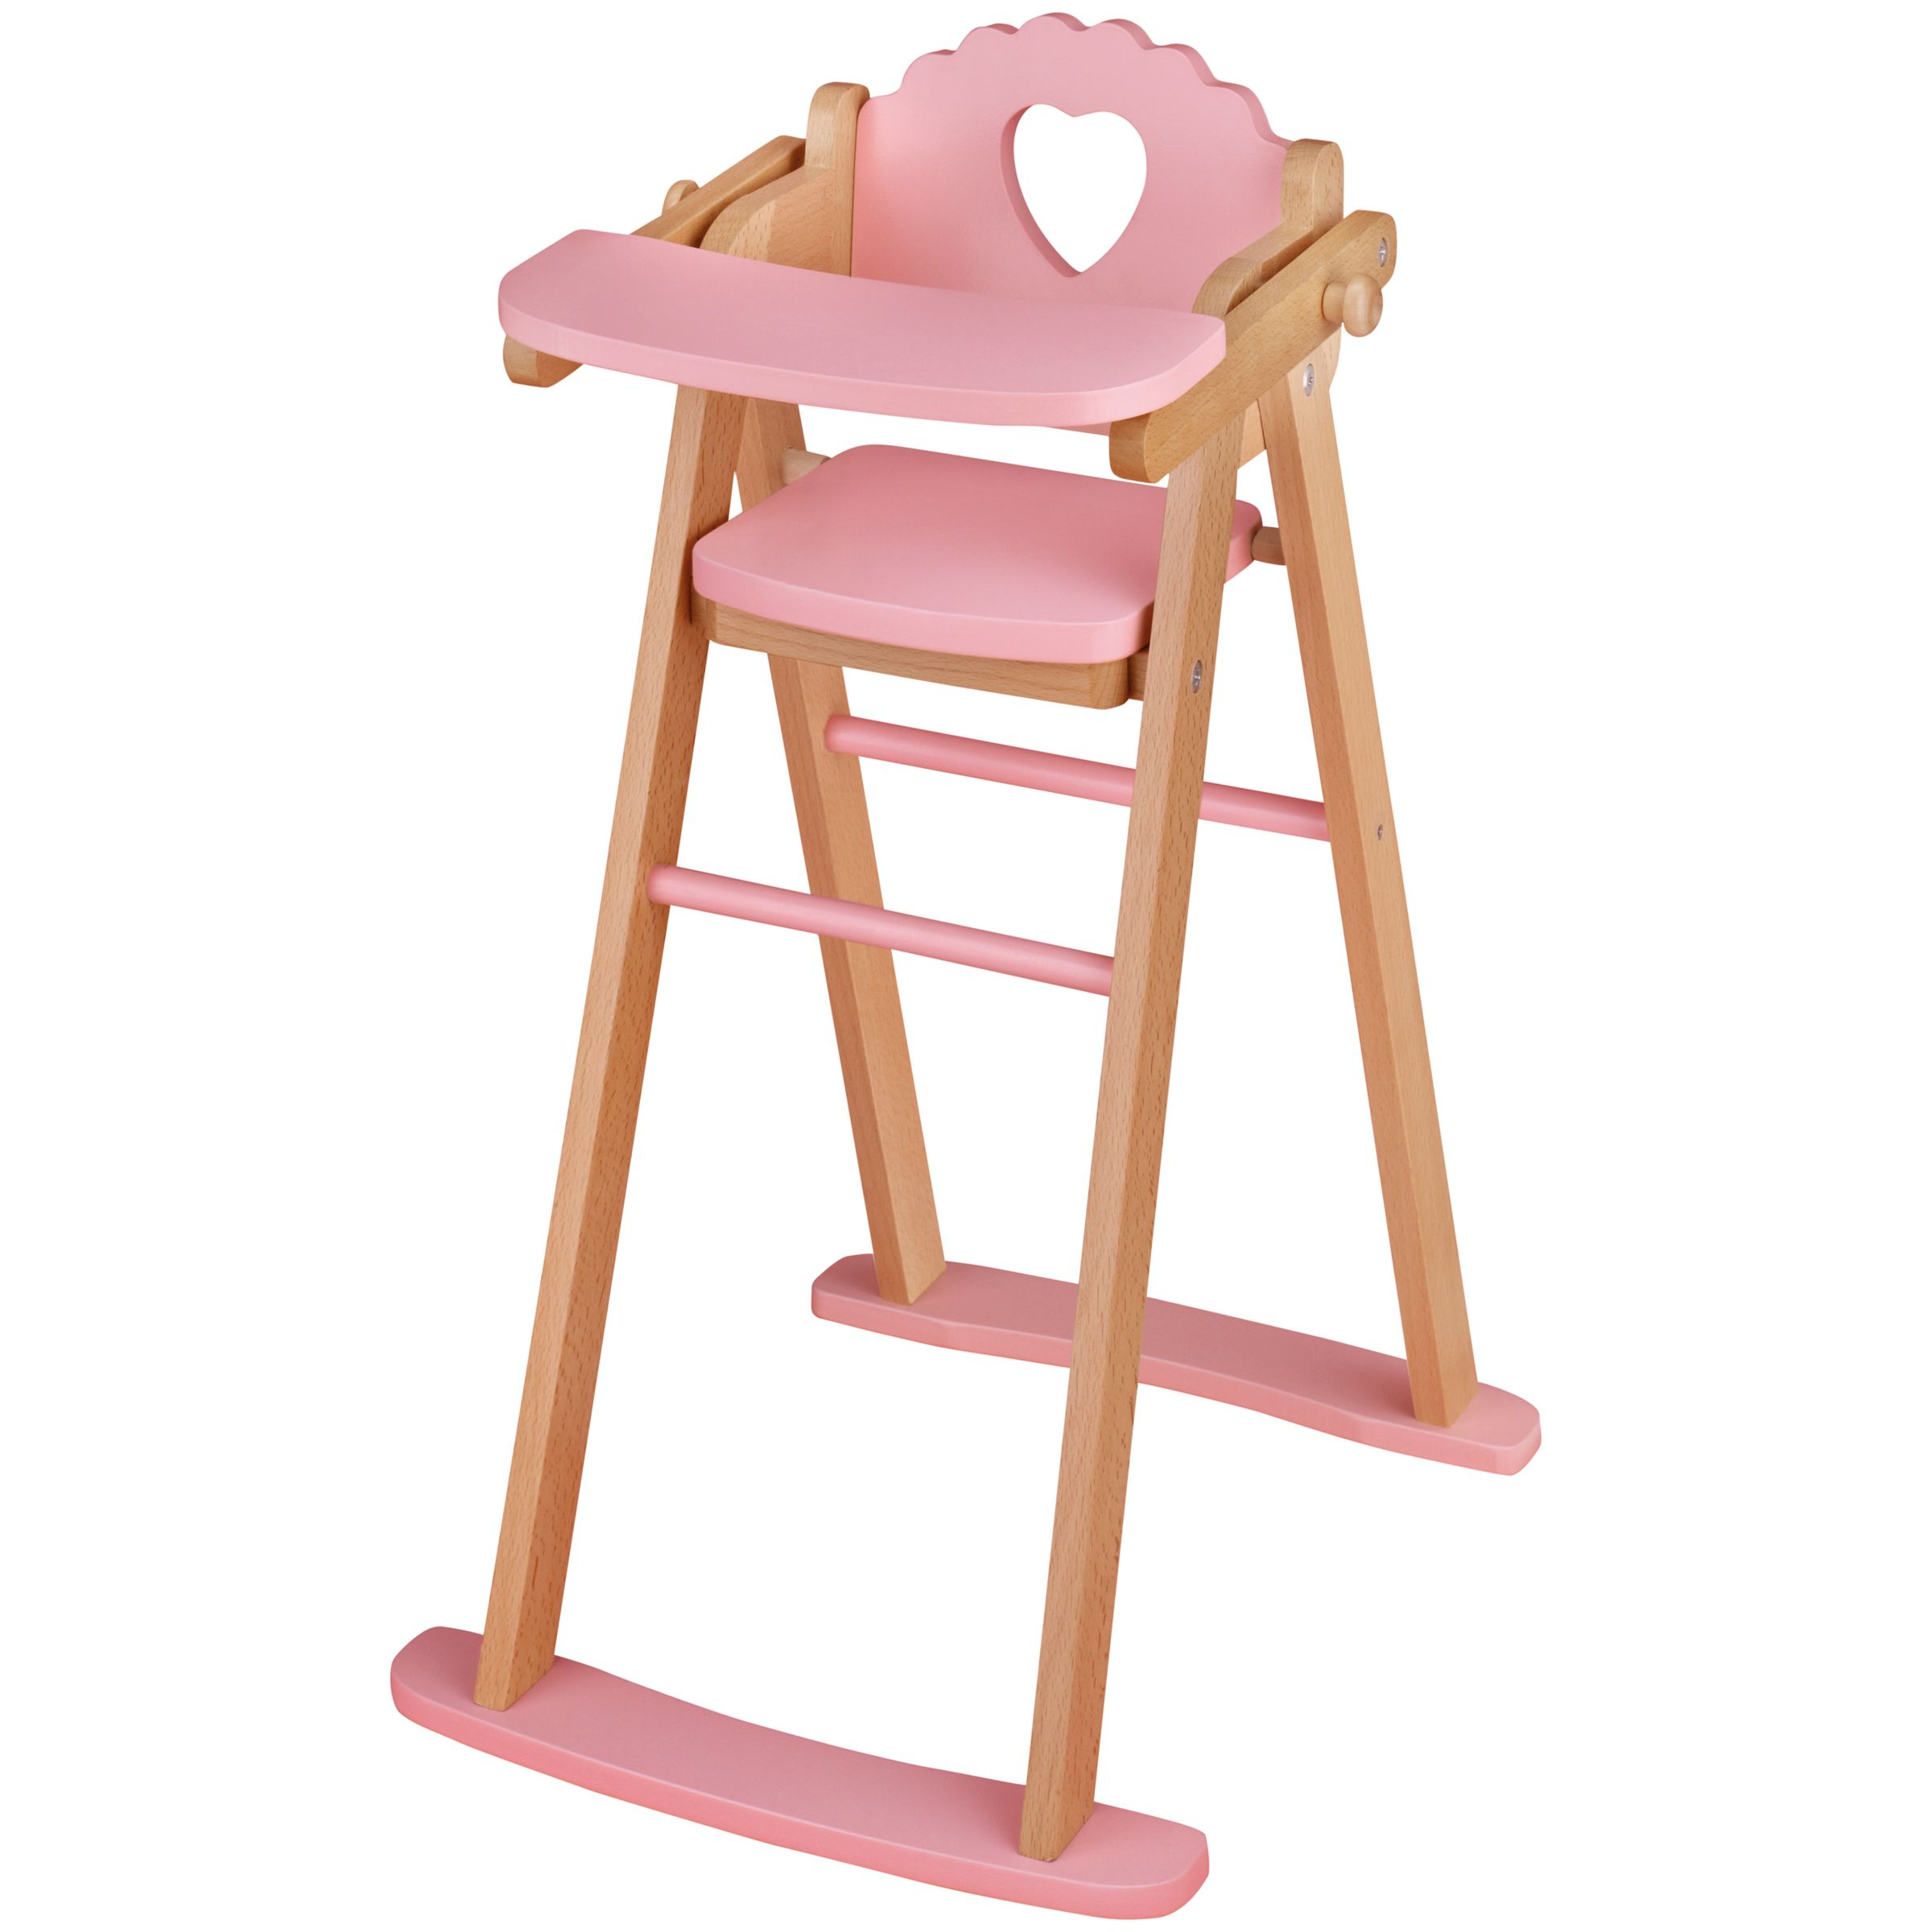 high chairs uk medline transport chair accessories buy cheap doll compare dolls prices for best